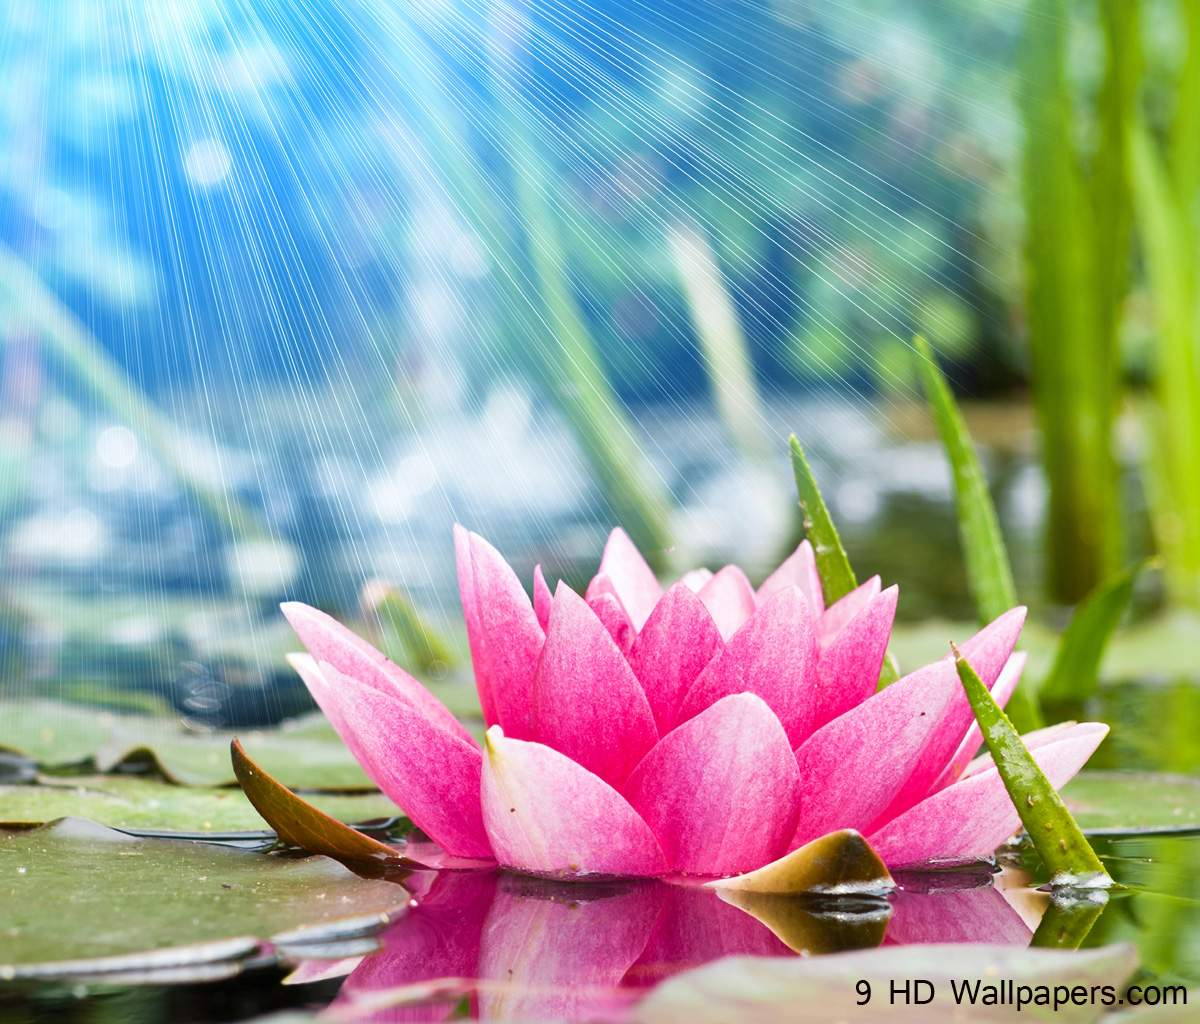 Lotus Flower HD Wallpapers, Flowers Images And Photos – Full HD ...